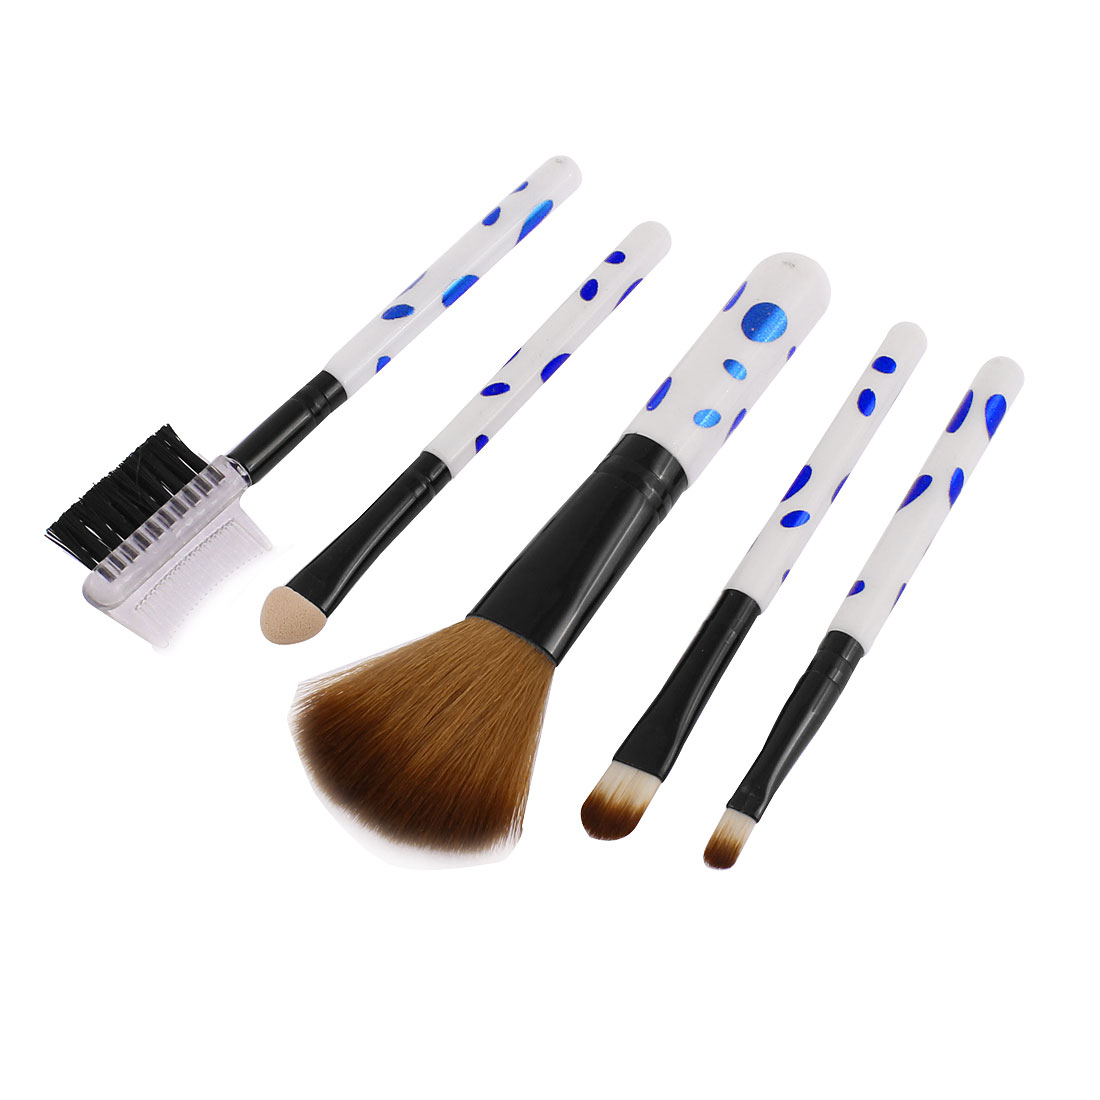 Woman Makeup Powder Brow Comb Eyeshadow Applicator Lip Blush Brush 5 in 1